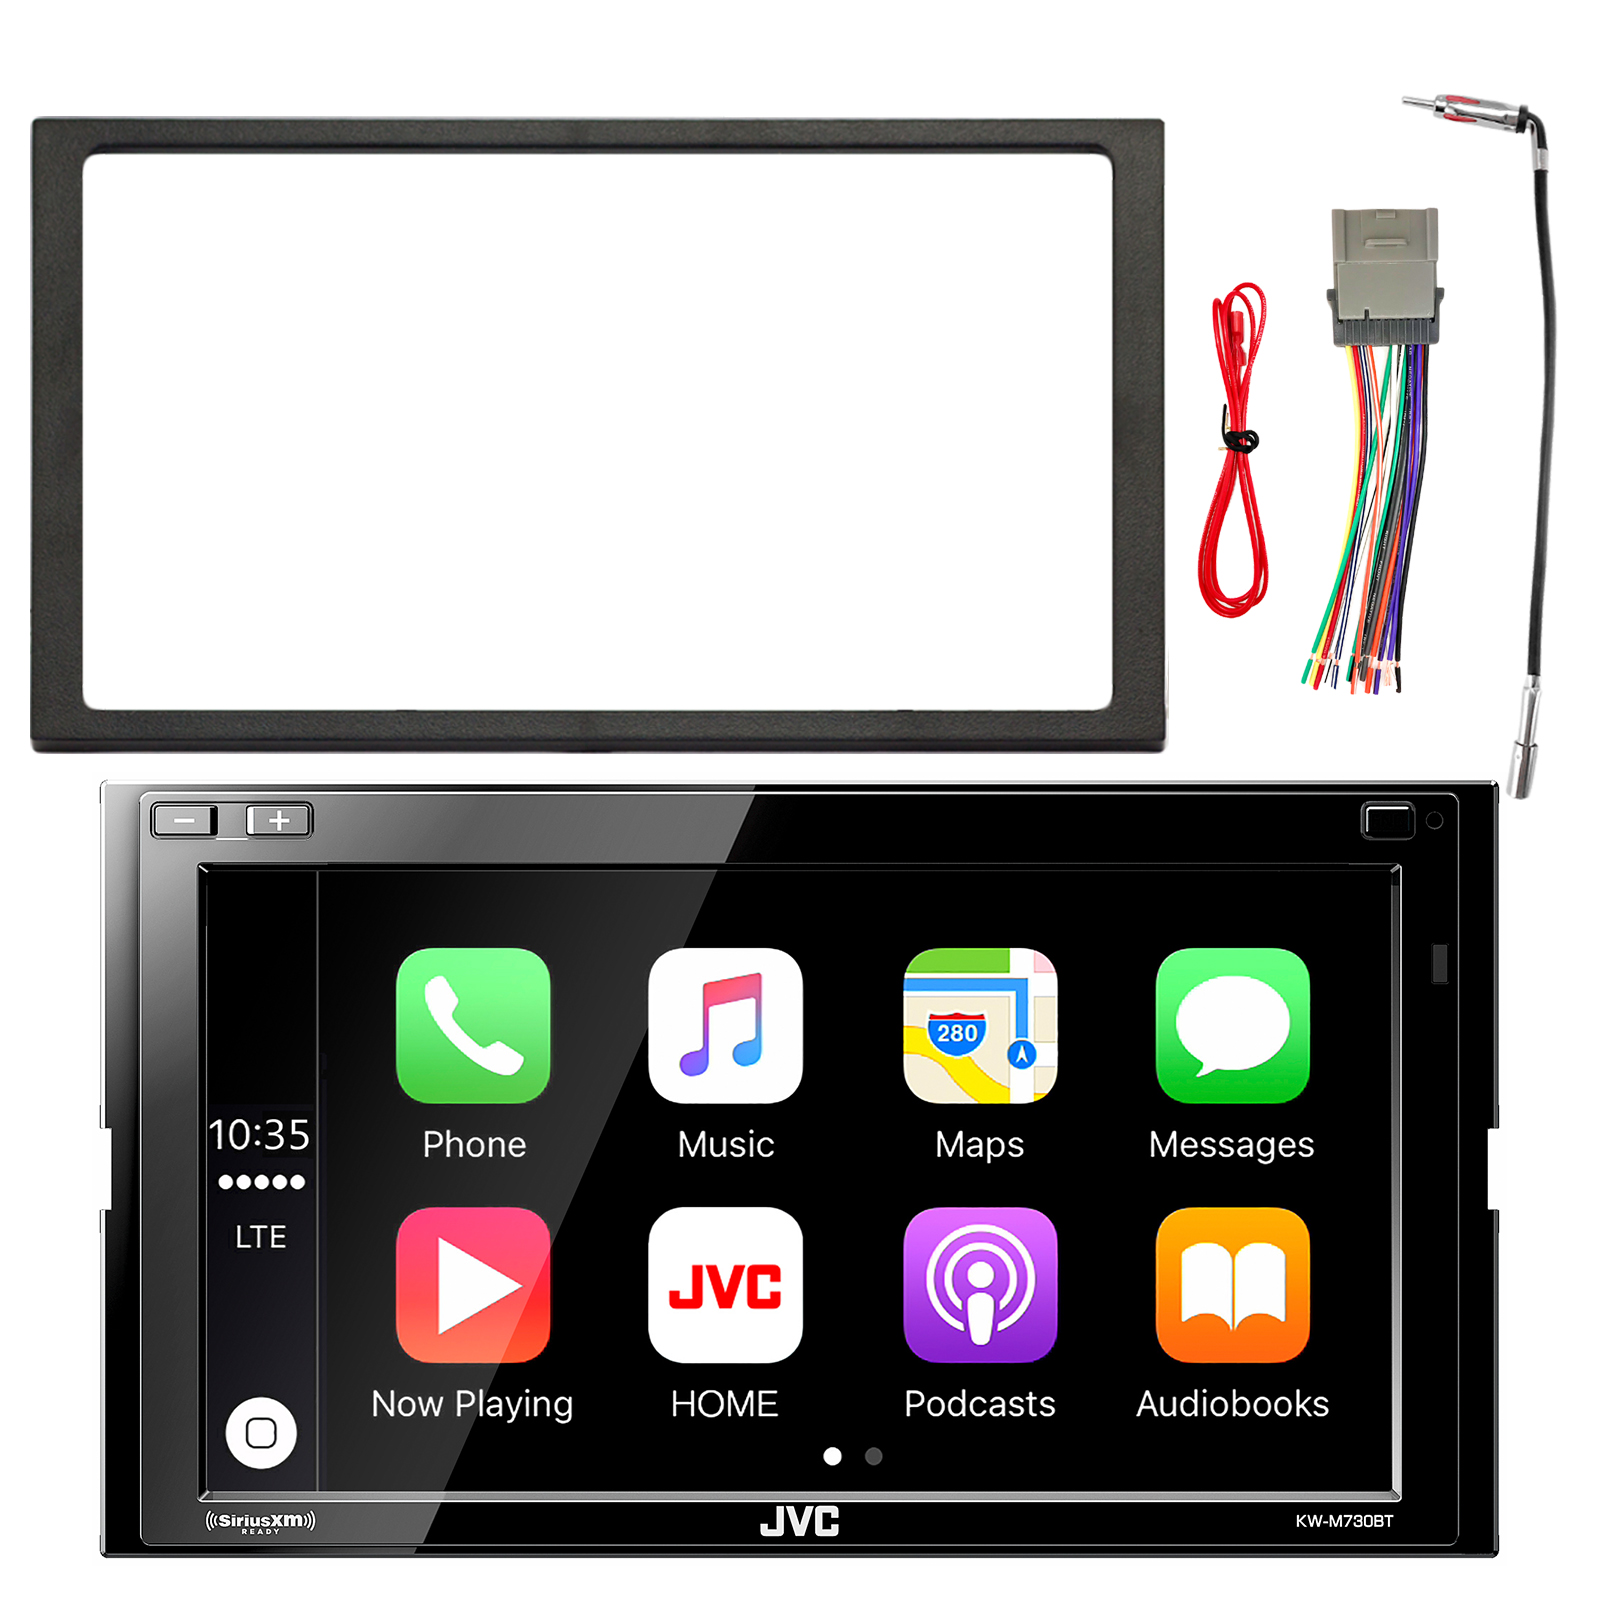 JVC 2-DIN Digital Multimedia Blueooth Receiver w/ Built in Amp, Enrock Double DIN Installation Dash Kit, Enrock Stereo Wiring Harness, Enrock Antenna Adapter